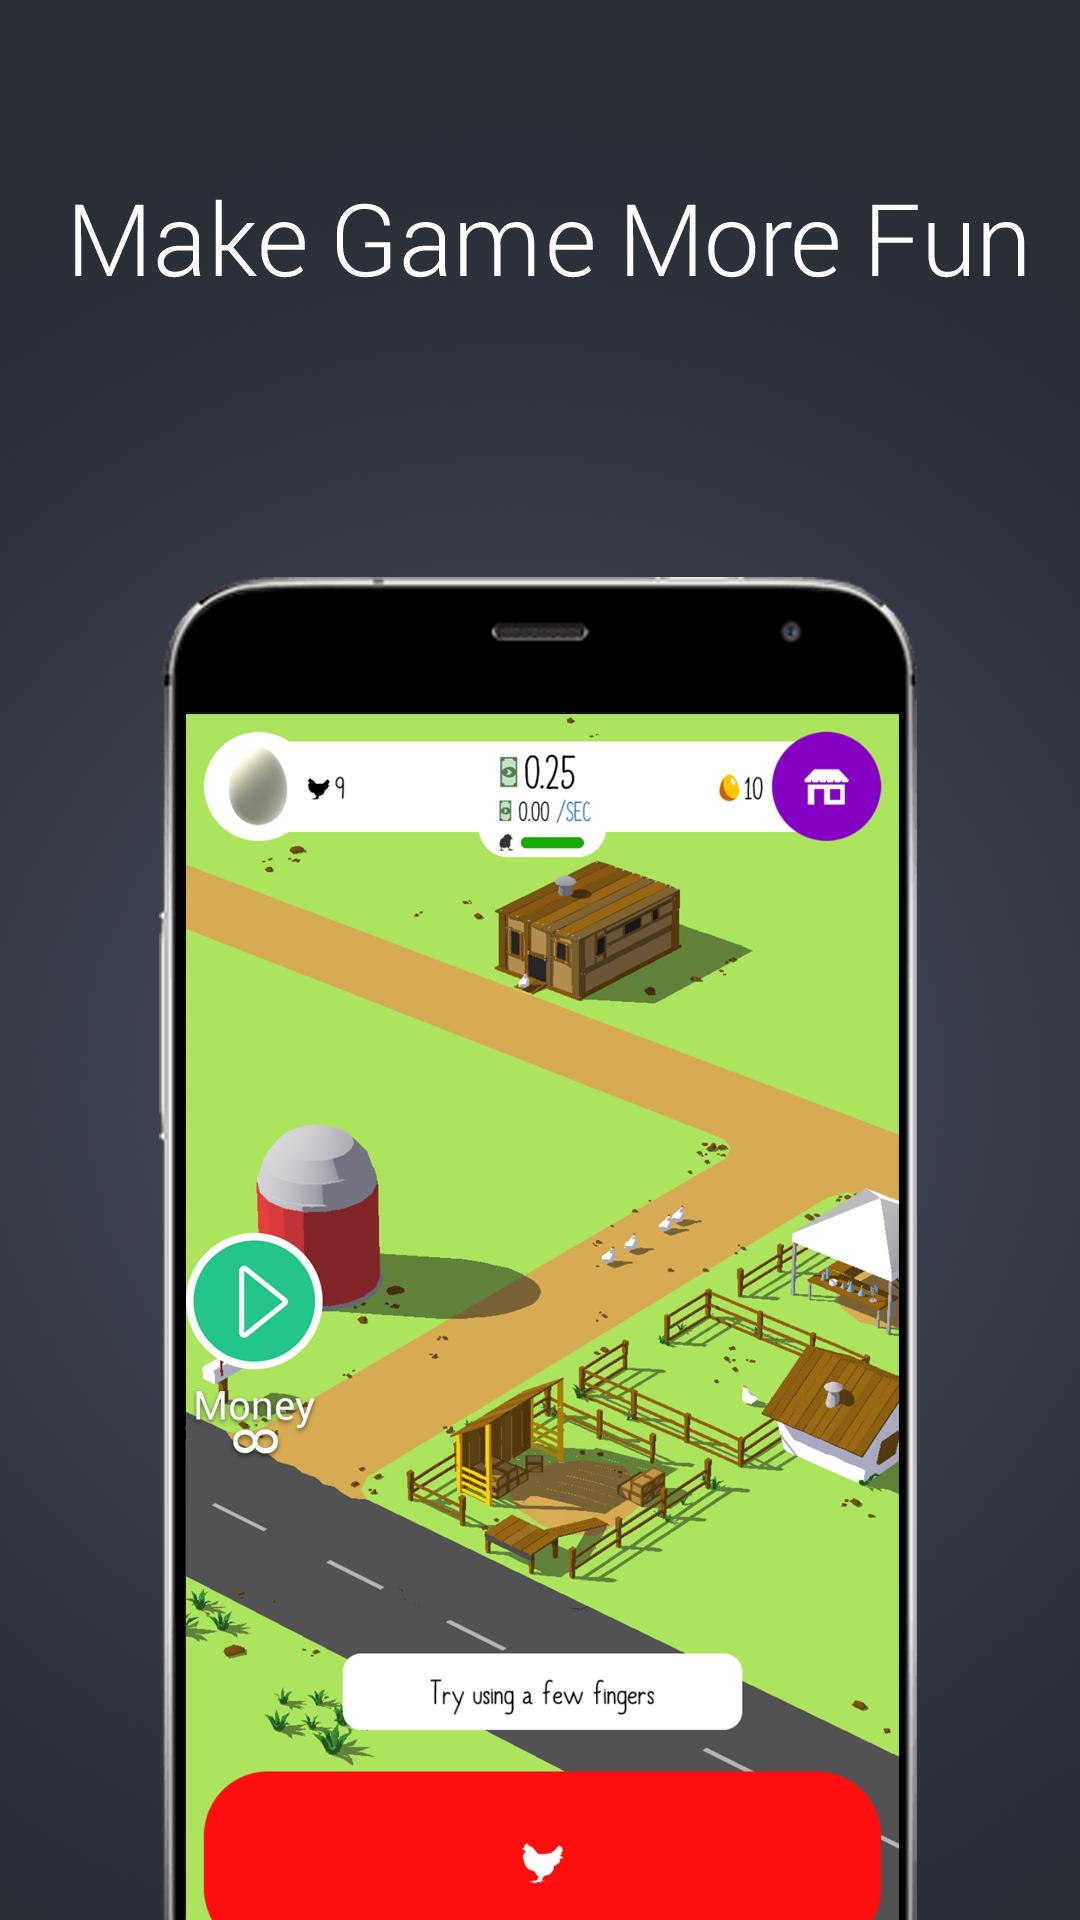 Auto Clicker for Egg, Inc  for Android - APK Download